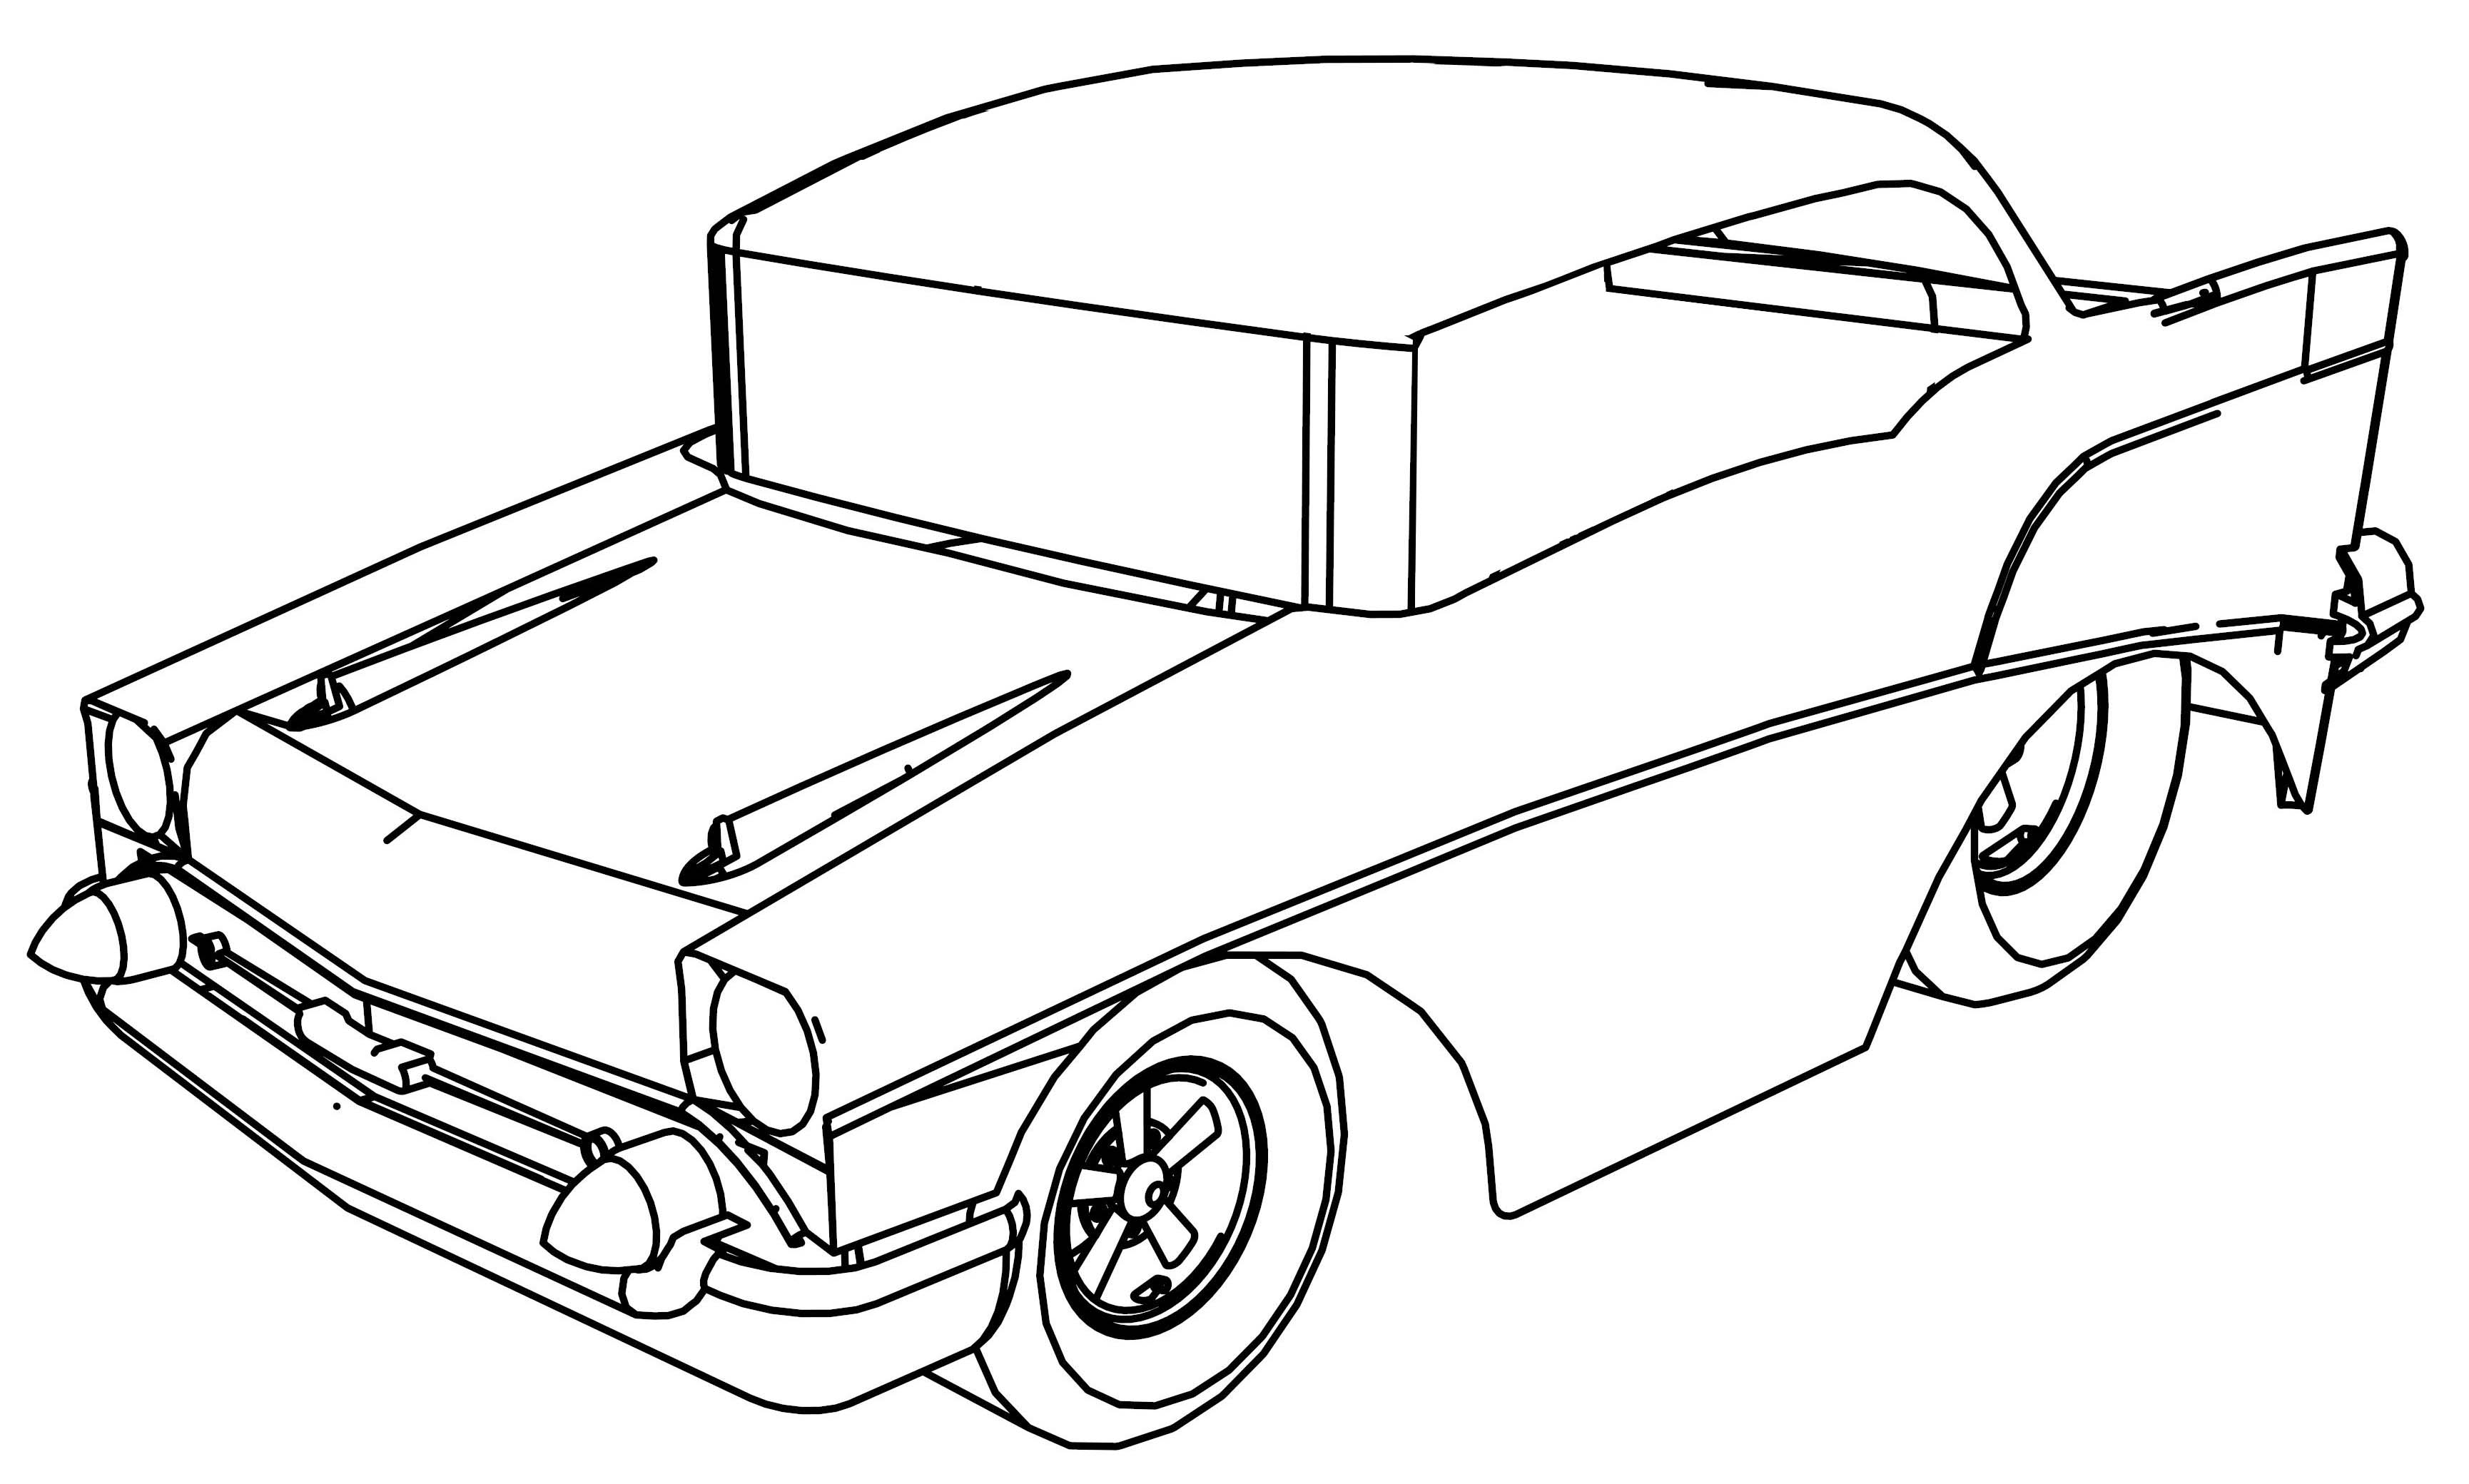 57 Chevy Drawing At Free For Personal Use Convertible Top Wiring 3460x2080 1955